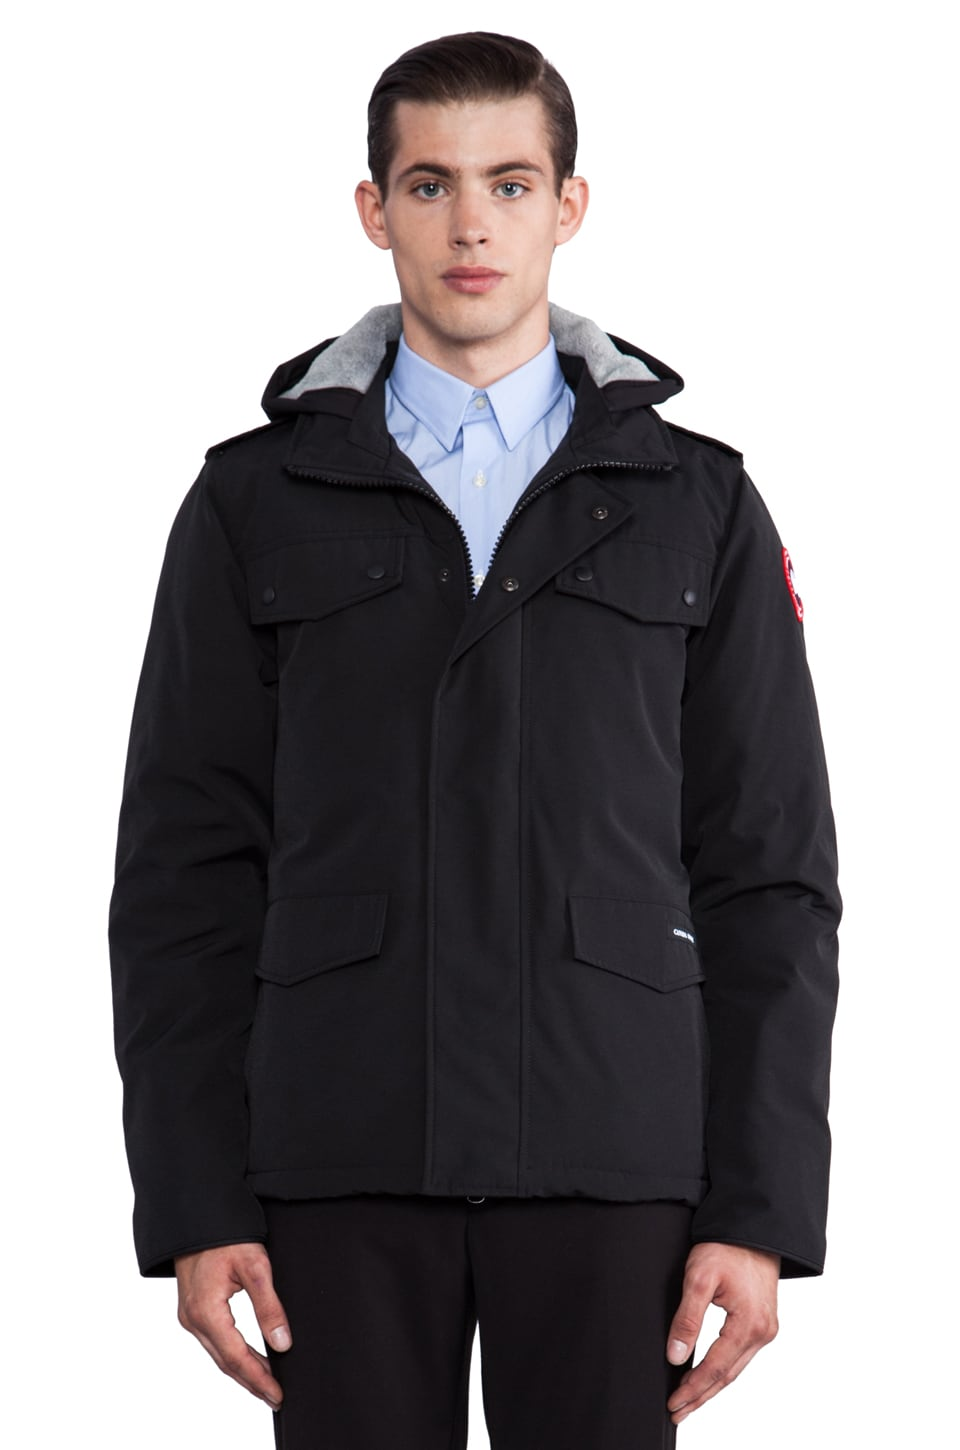 Canada Goose Burnett Jacket in Black